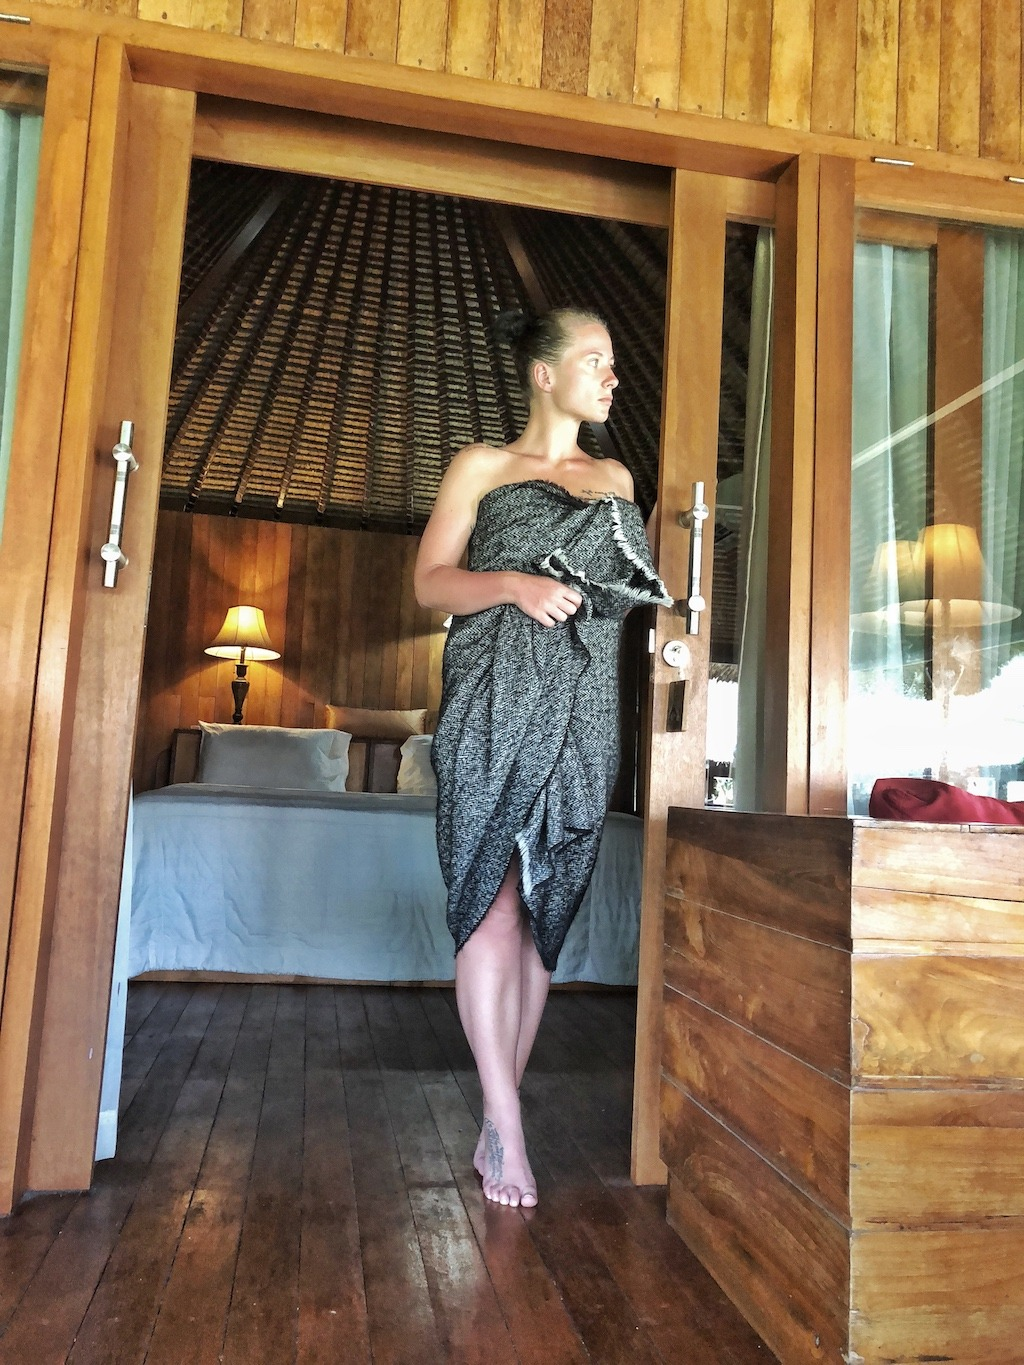 Hostel Recommendation While Travelling to Nusa Lembongan – Sukanusa Luxury Huts Morning